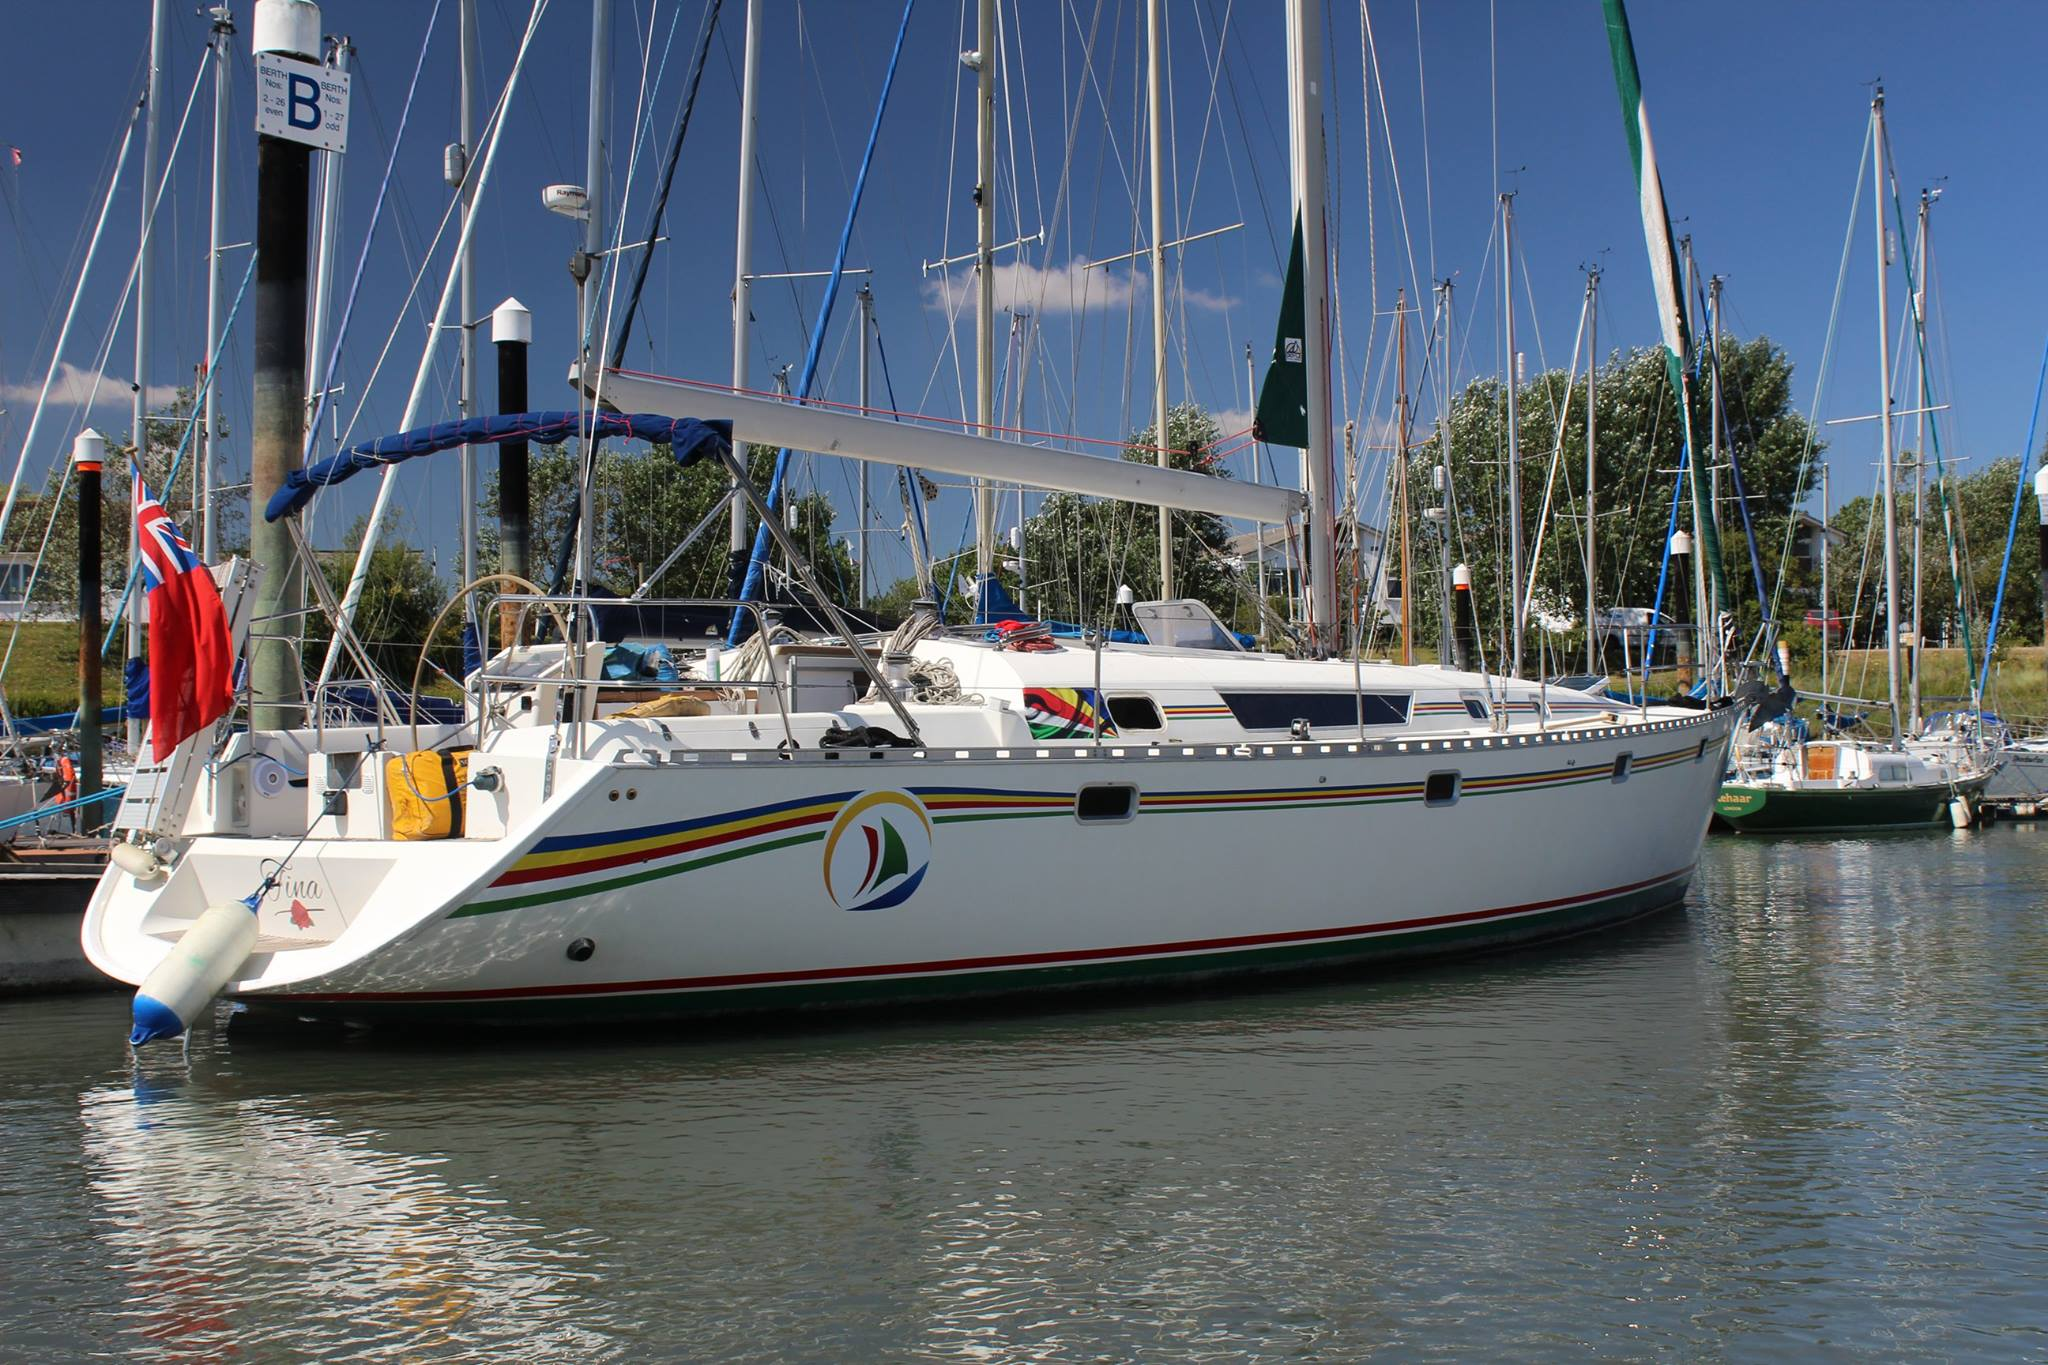 Seyscapes - Yacht Tina - Moored in Tollesbury